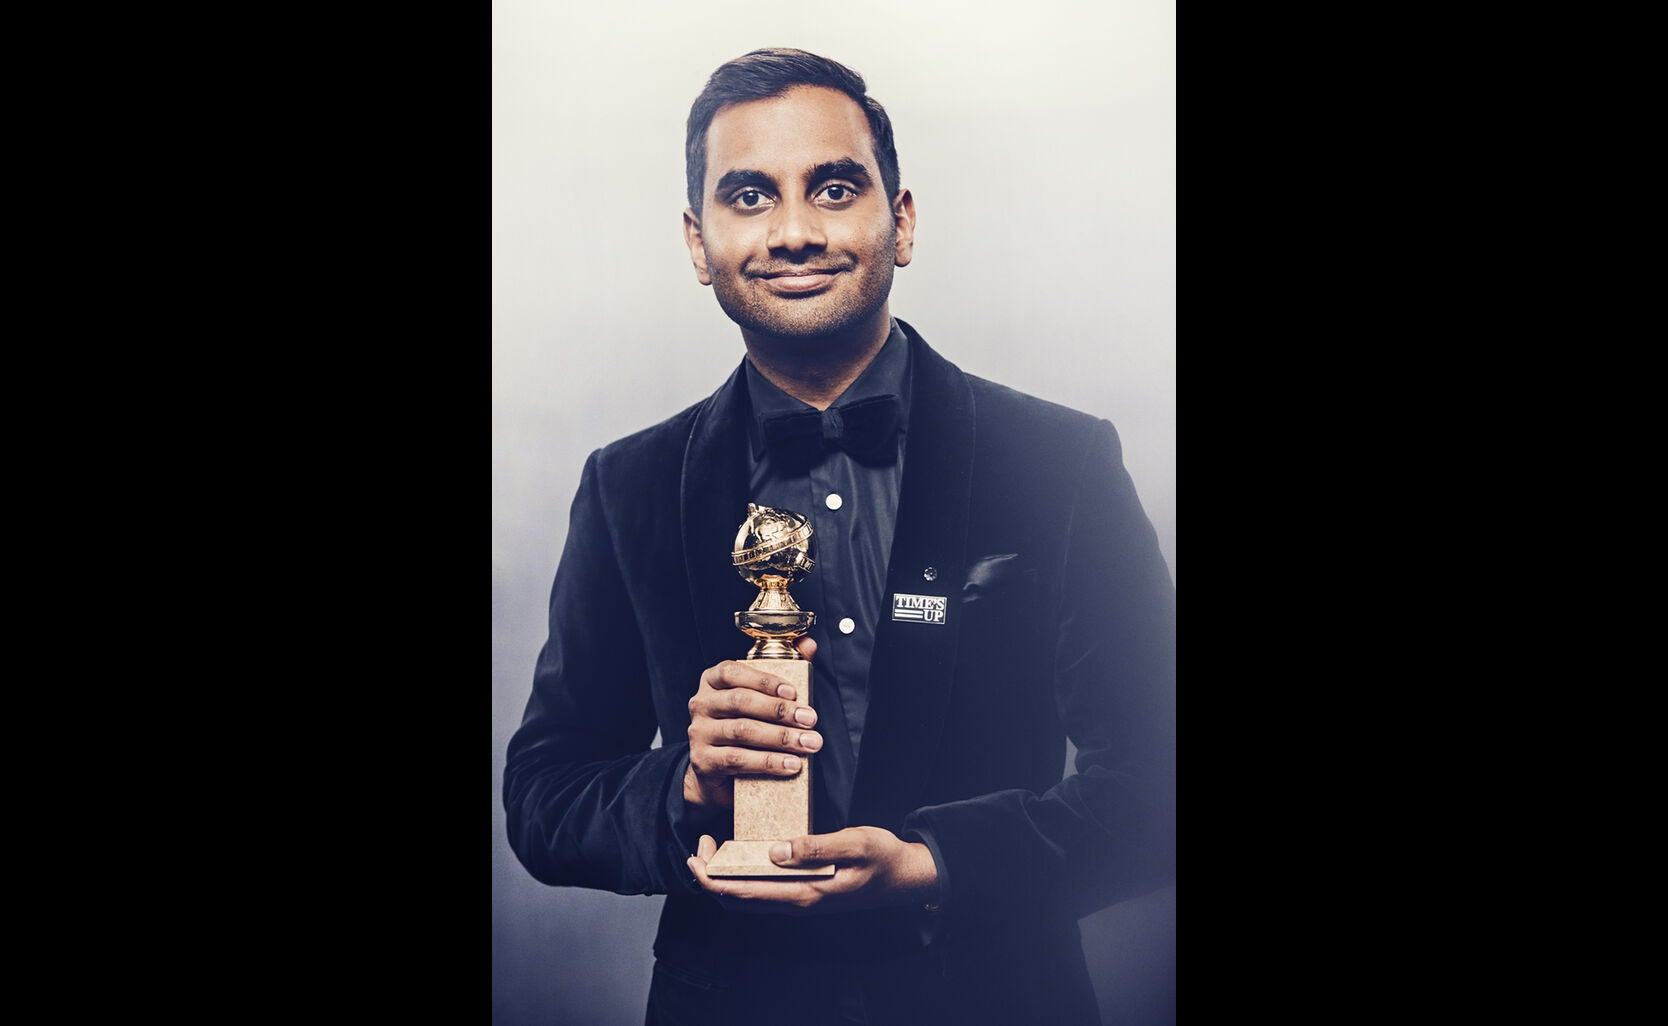 Aziz Ansari, Best Performance by an Actor in a Television Series, Comedy - Master of None